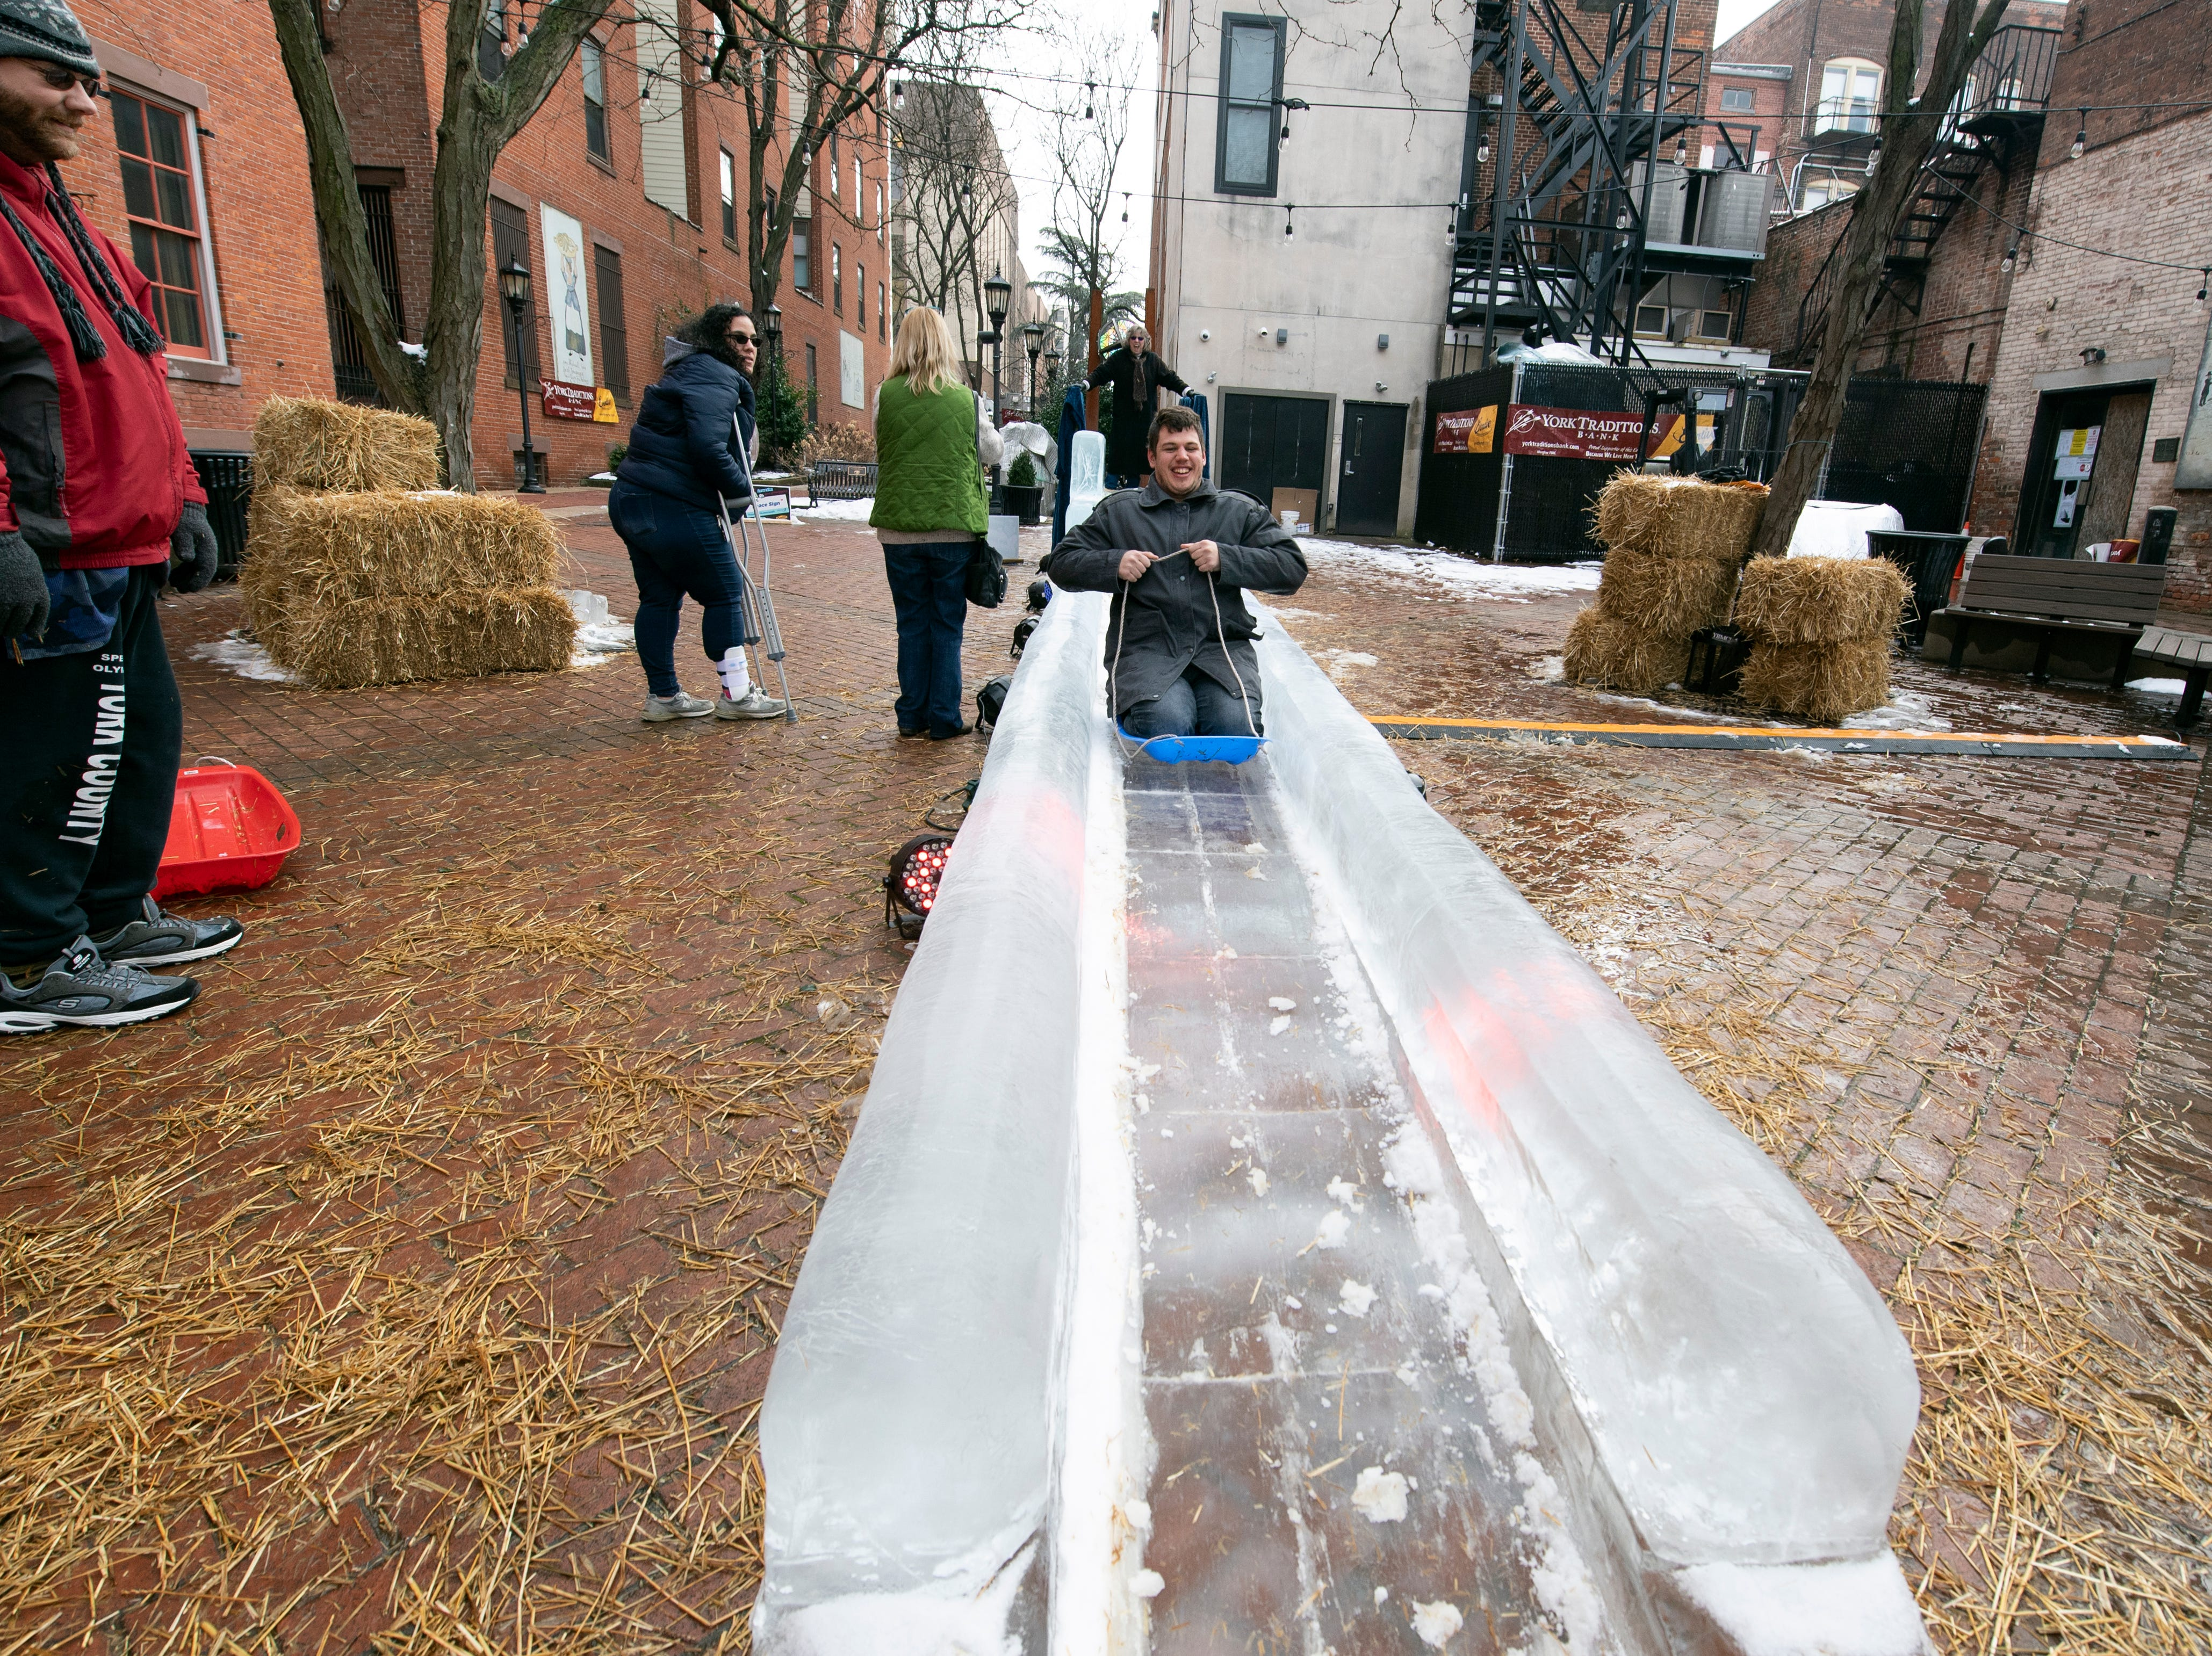 Stephen Lichty rides a sled down the 40-foot long ice slide in Cherry Lane, downtown, Friday, Jan. 18, 2019. The FestivICE ice festival has interactive ice sculptures, an ice slide and more. The three-day event ends Saturday.